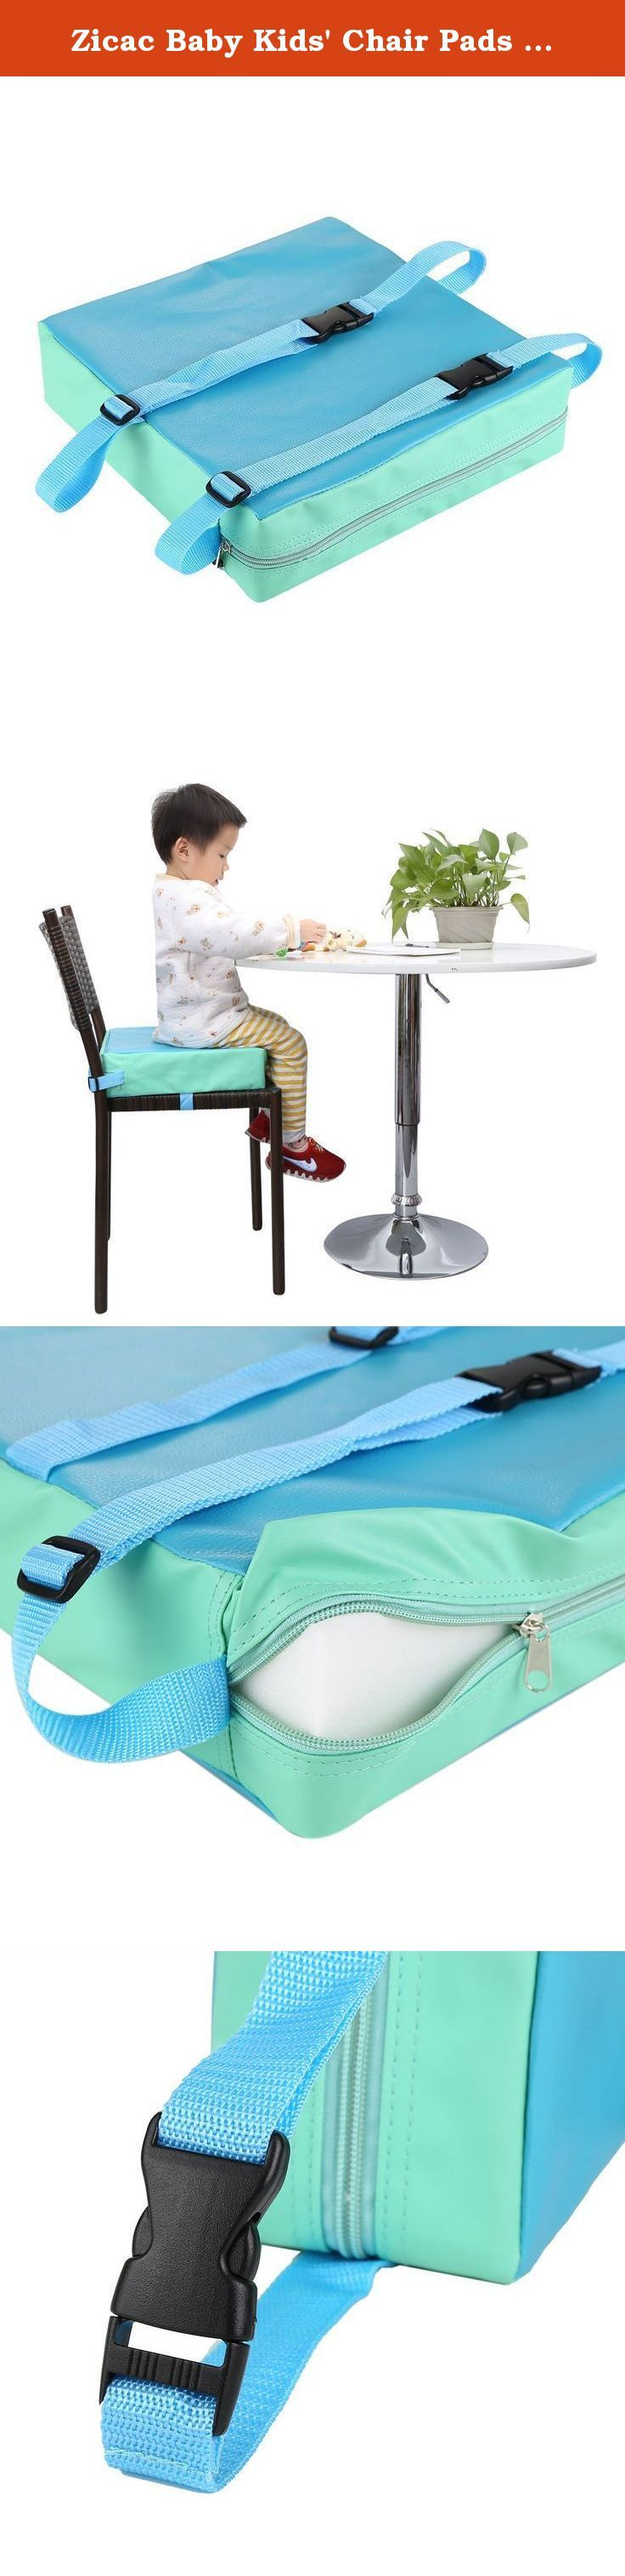 """Zicac Baby Kids' Chair Pads Chair Increasing Cushion Dismountable and Adjustable Booster Seat Mat (Blue). Color: Green / Red / Blue Size: 31.5 x 31.5 x 8cm / 12.4""""x12.4""""x3"""" Material: synthetic leather, high density sponge Washing:Hand wash It is designed for children who can sit unaided at a table.It has 2 safety straps with clips which fasten under the chair and will fit most dining chairs. Packaging including 1 x Pad ."""